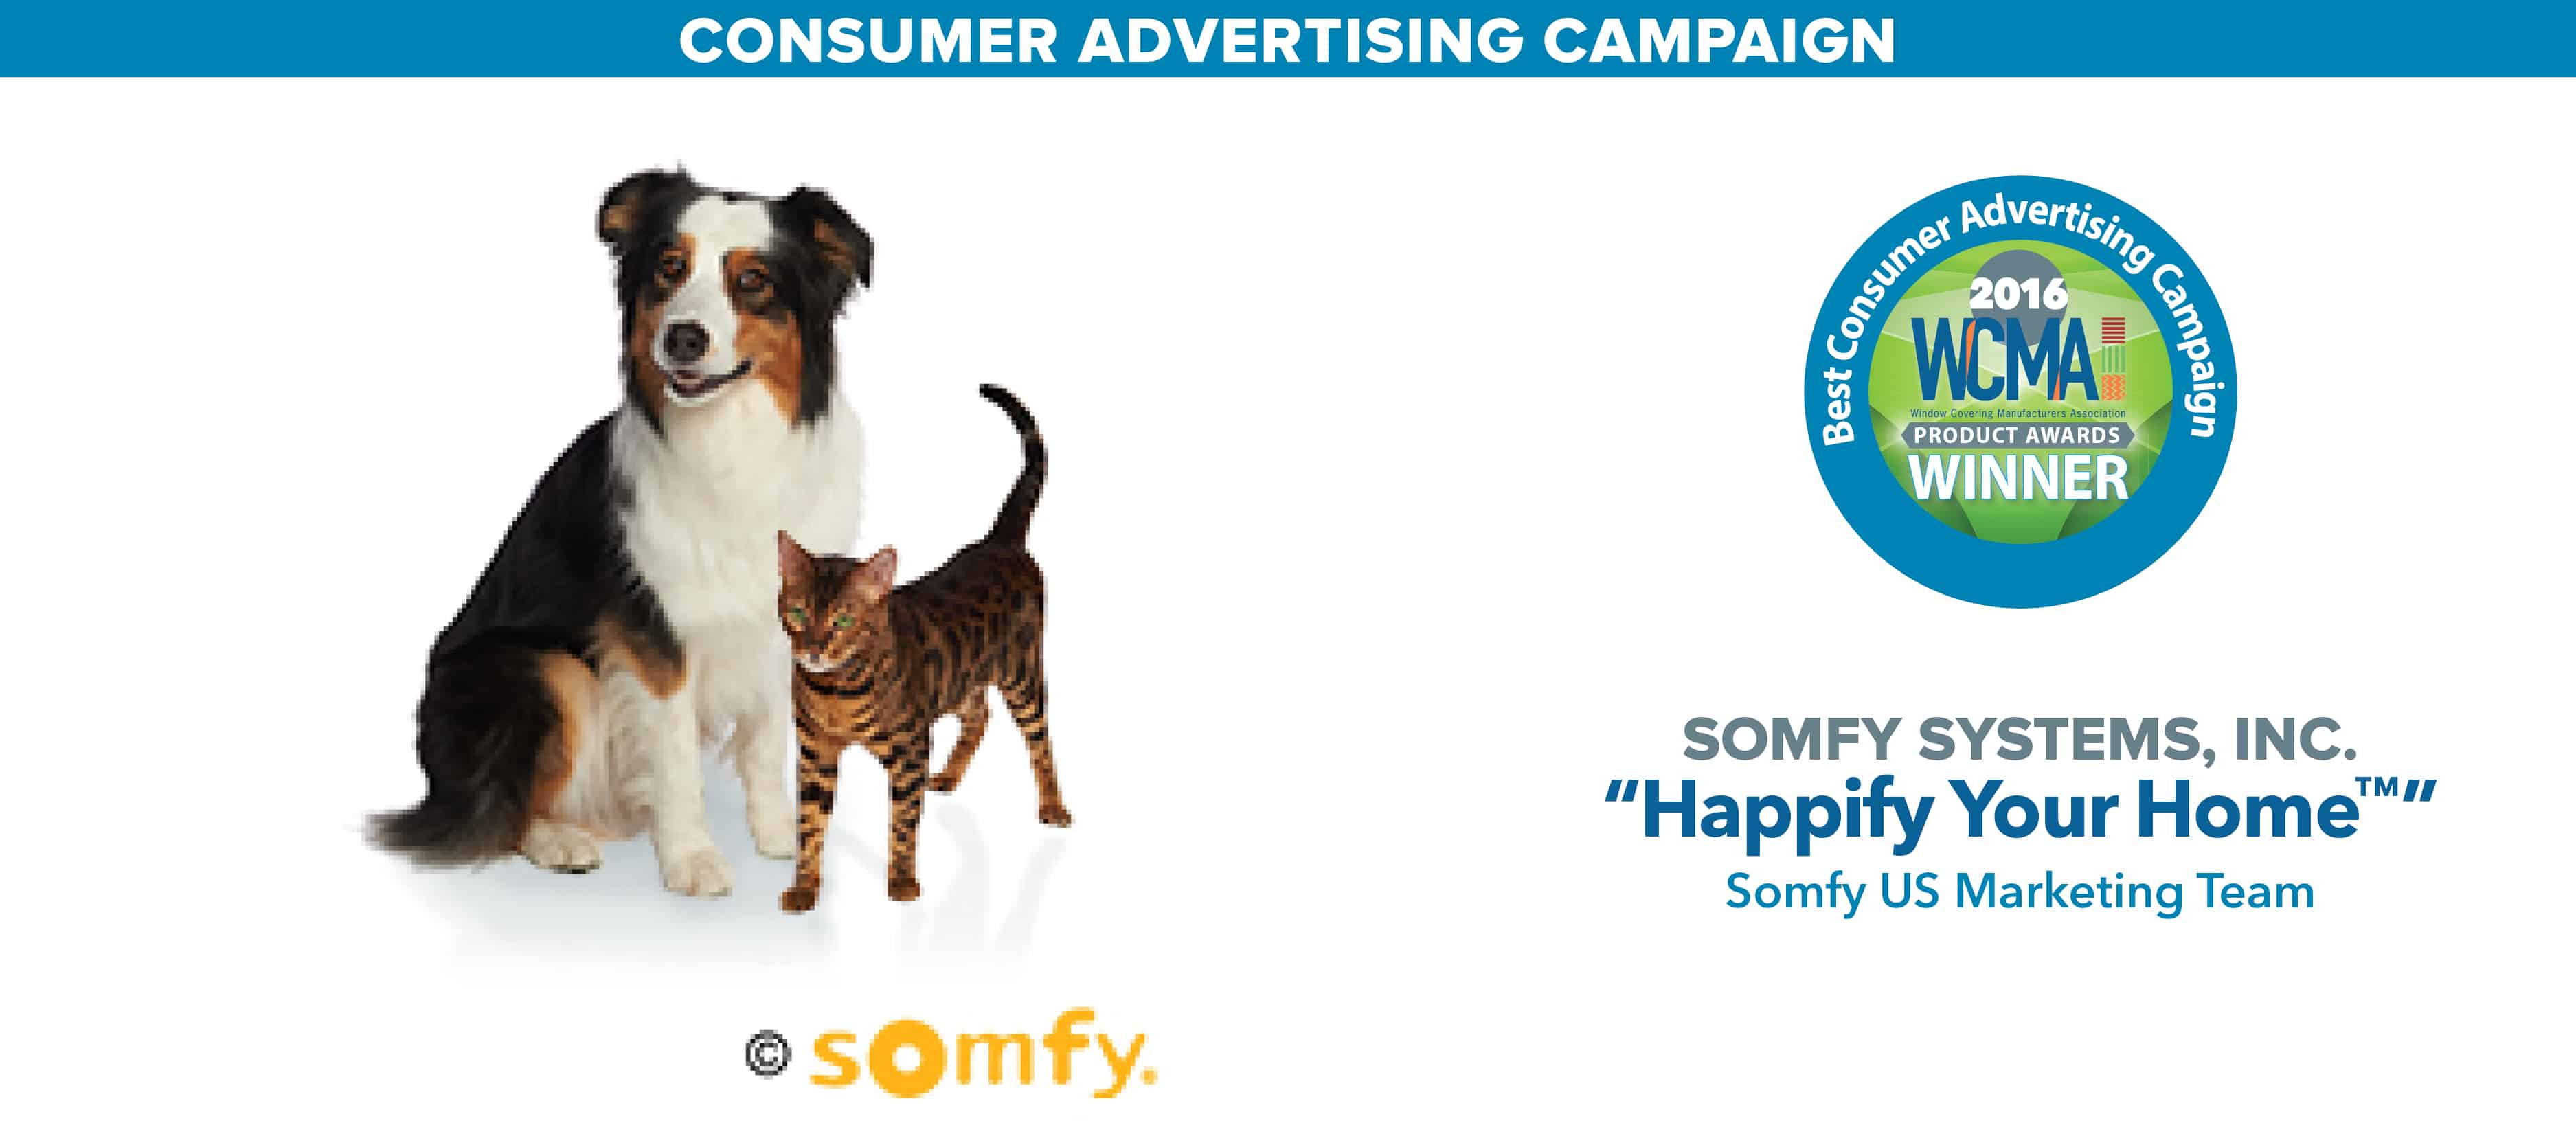 Ontario Quality Motors >> Somfy Takes Home WCMA Award for Best Consumer Advertising ...